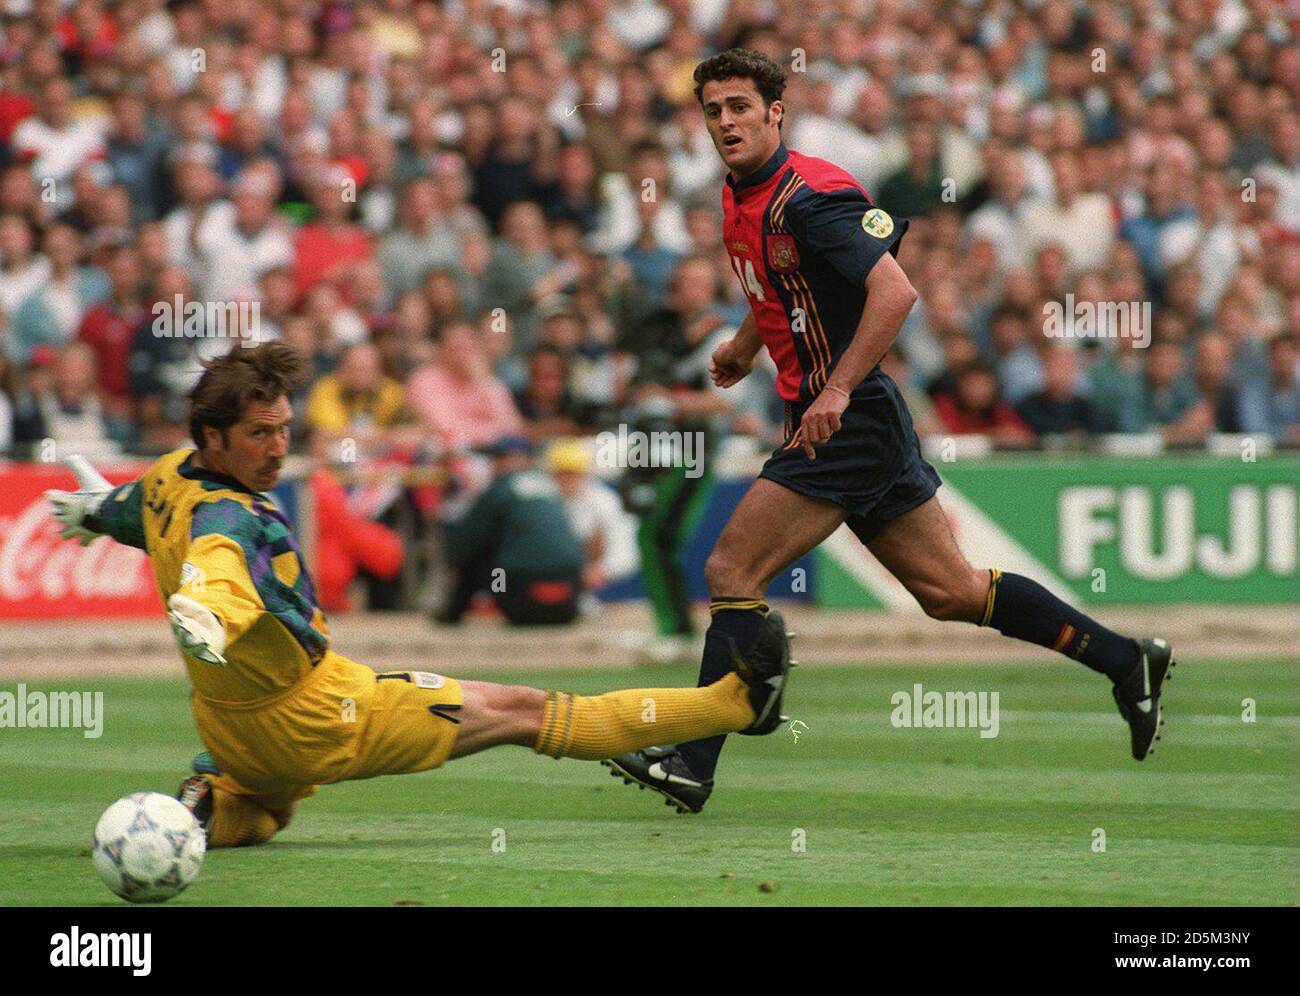 22-JUN-96 ..England v Spain ... Spain's Francisco Narvaez Kiko scores past the outstretched David Seaman but is ruled off side Stock Photo